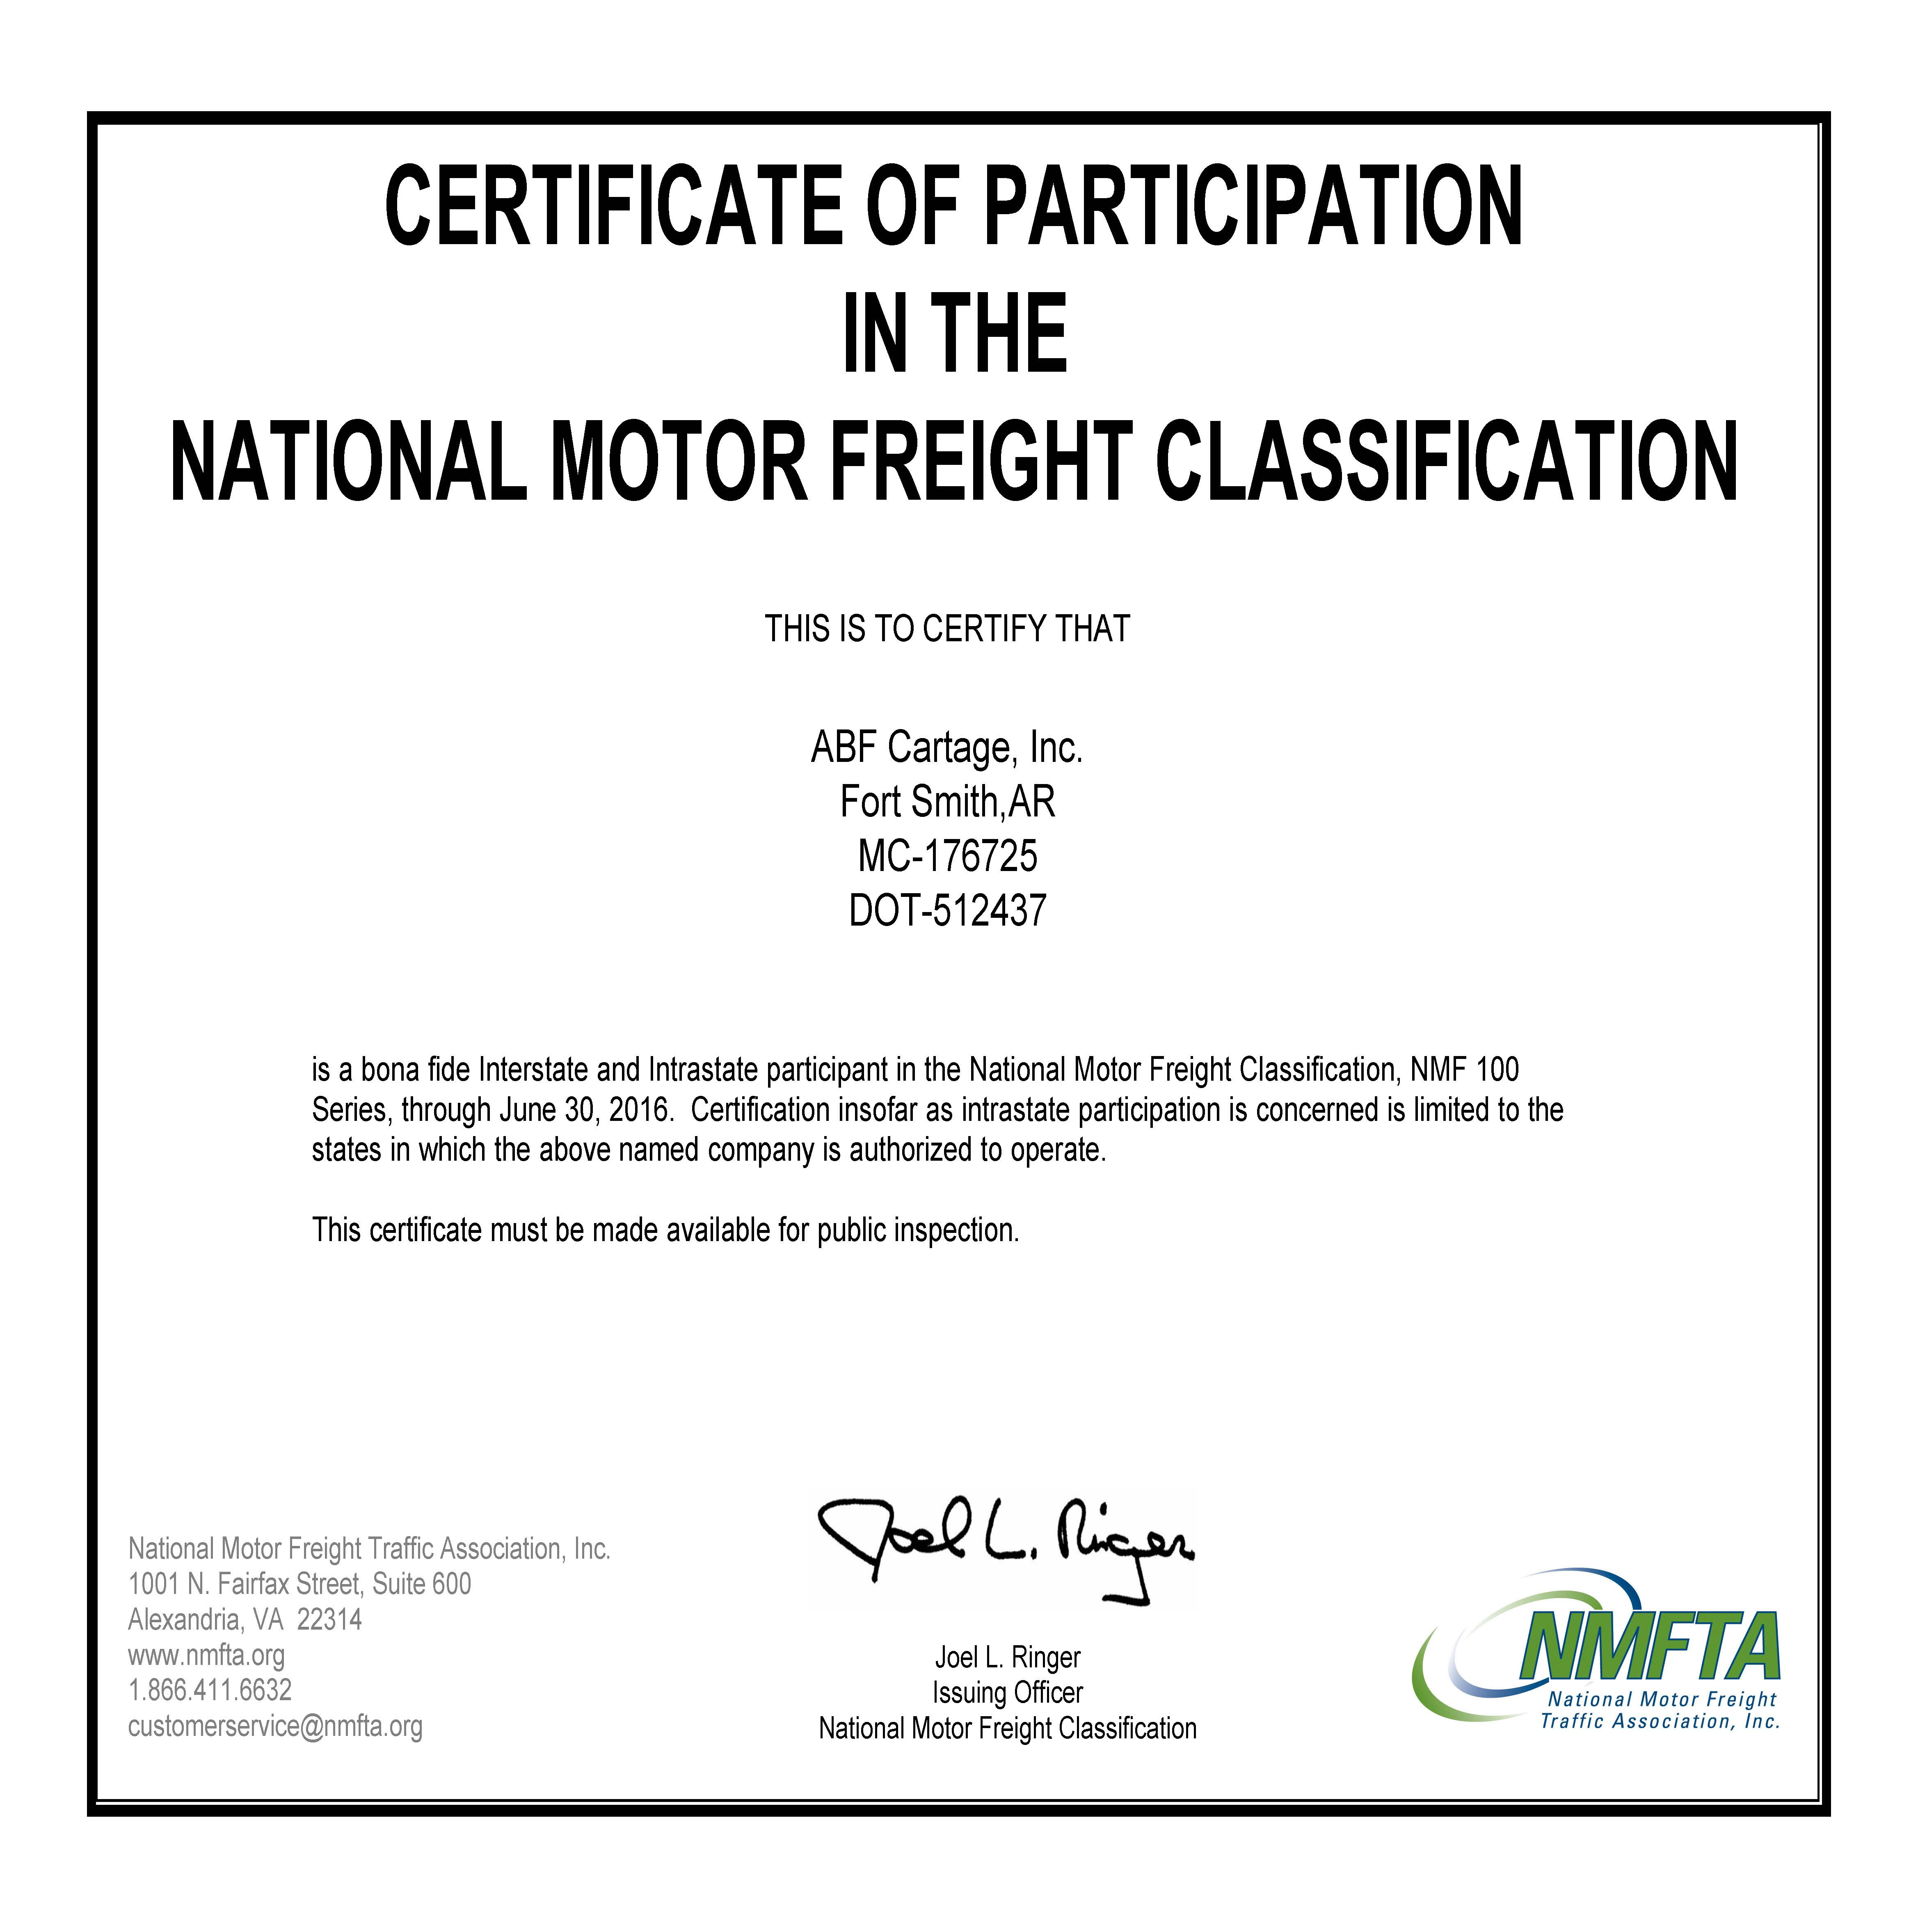 Abf freight forms and documents arcbest nmfc certificate of participation abf cartage inc falaconquin